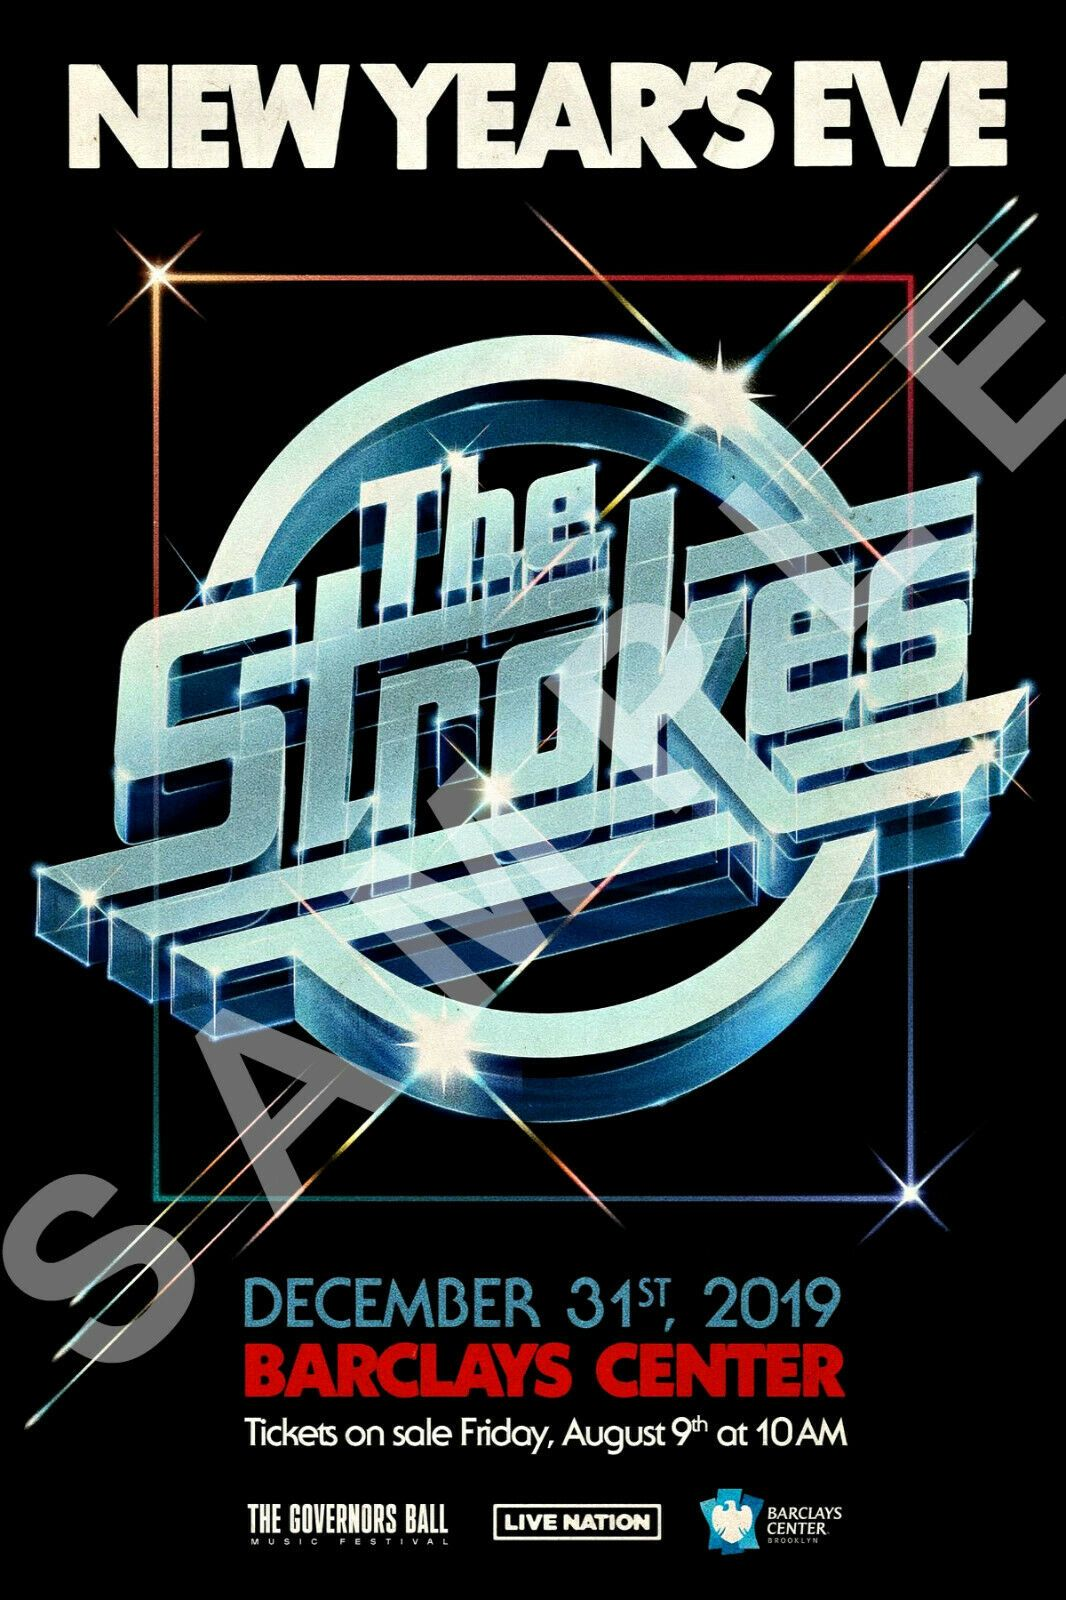 The Strokes 1218 New Years Eve 2019 Concert Poster Barclays Center Casablancas Artposters In 2020 The Strokes Concert Posters New Year S Eve 2019